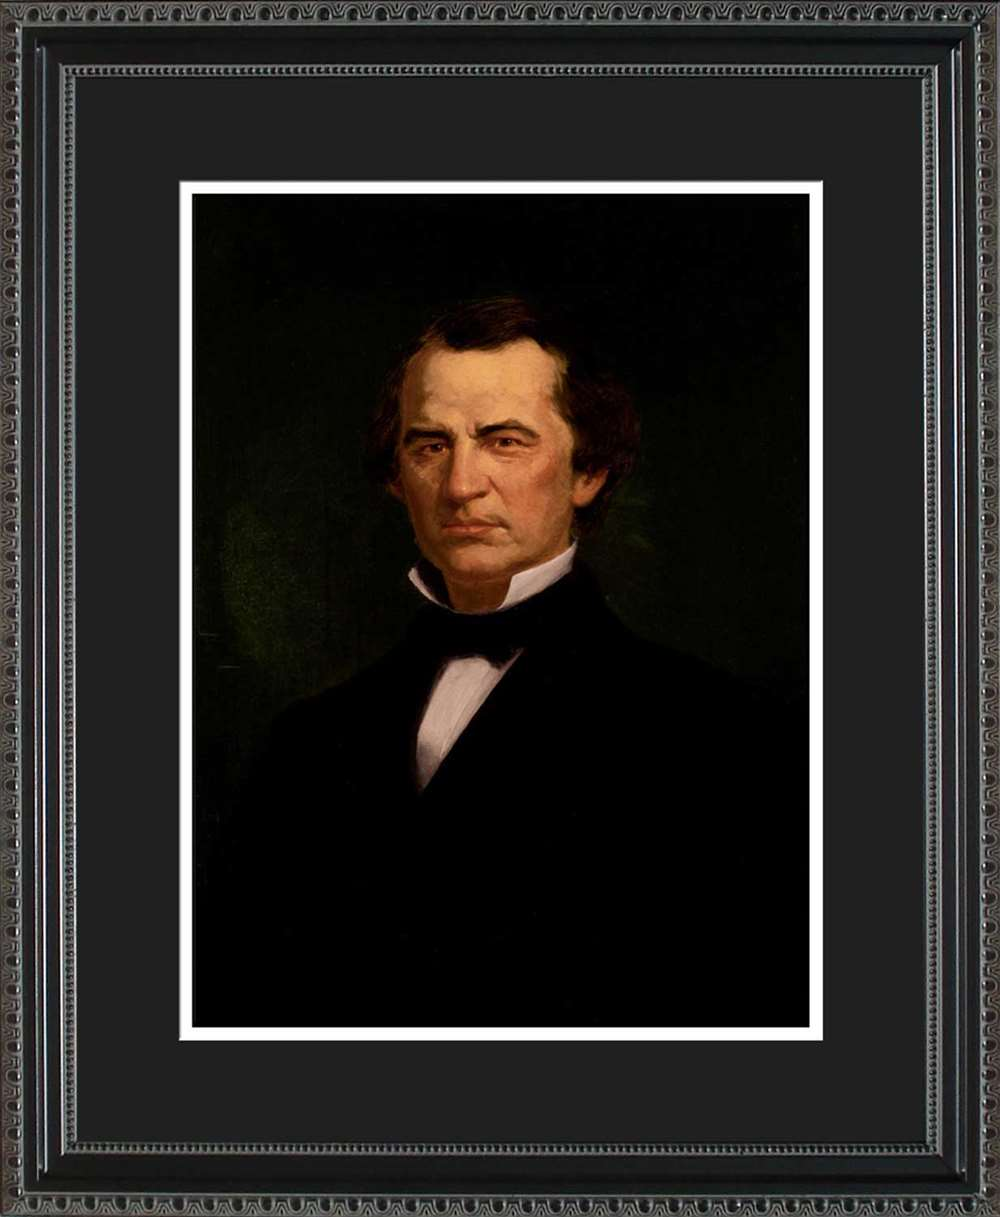 Andrew Johnson Official President Portrait, 16x20